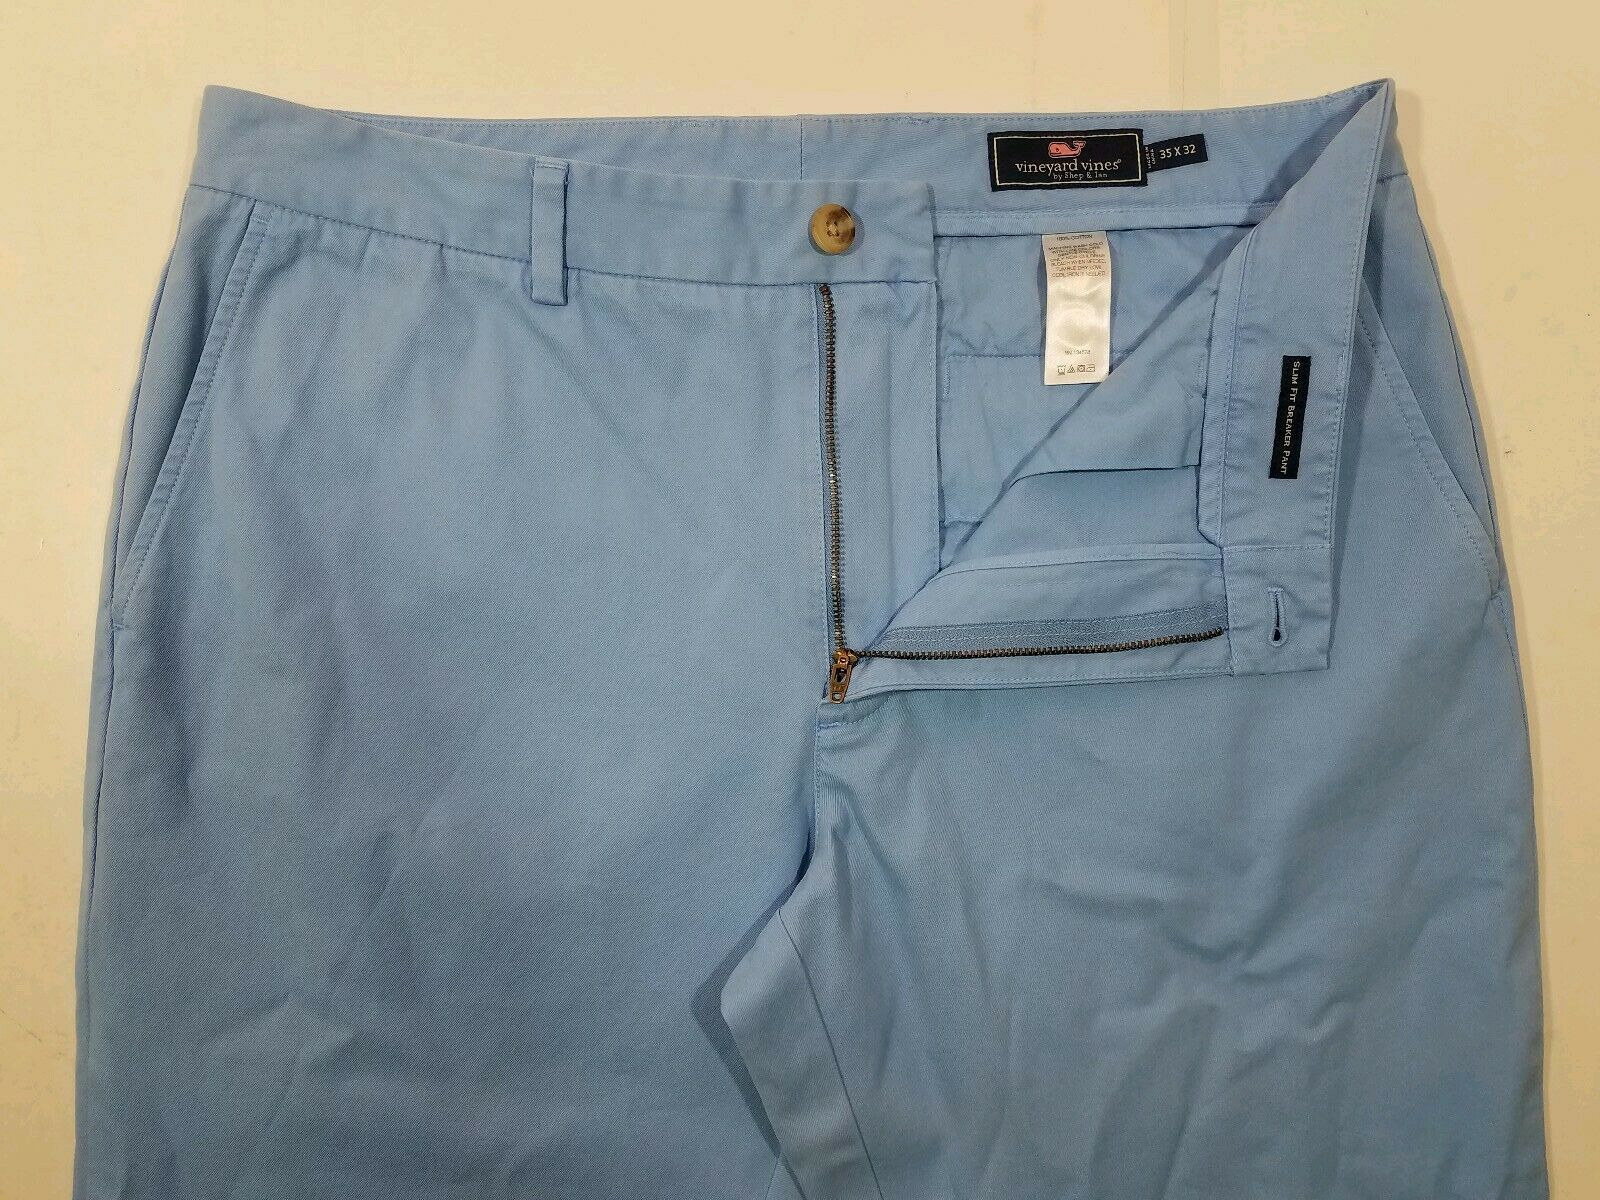 Vineyard Vines Slim Fit Breaker Pant Men's 35 x 32 Light bluee